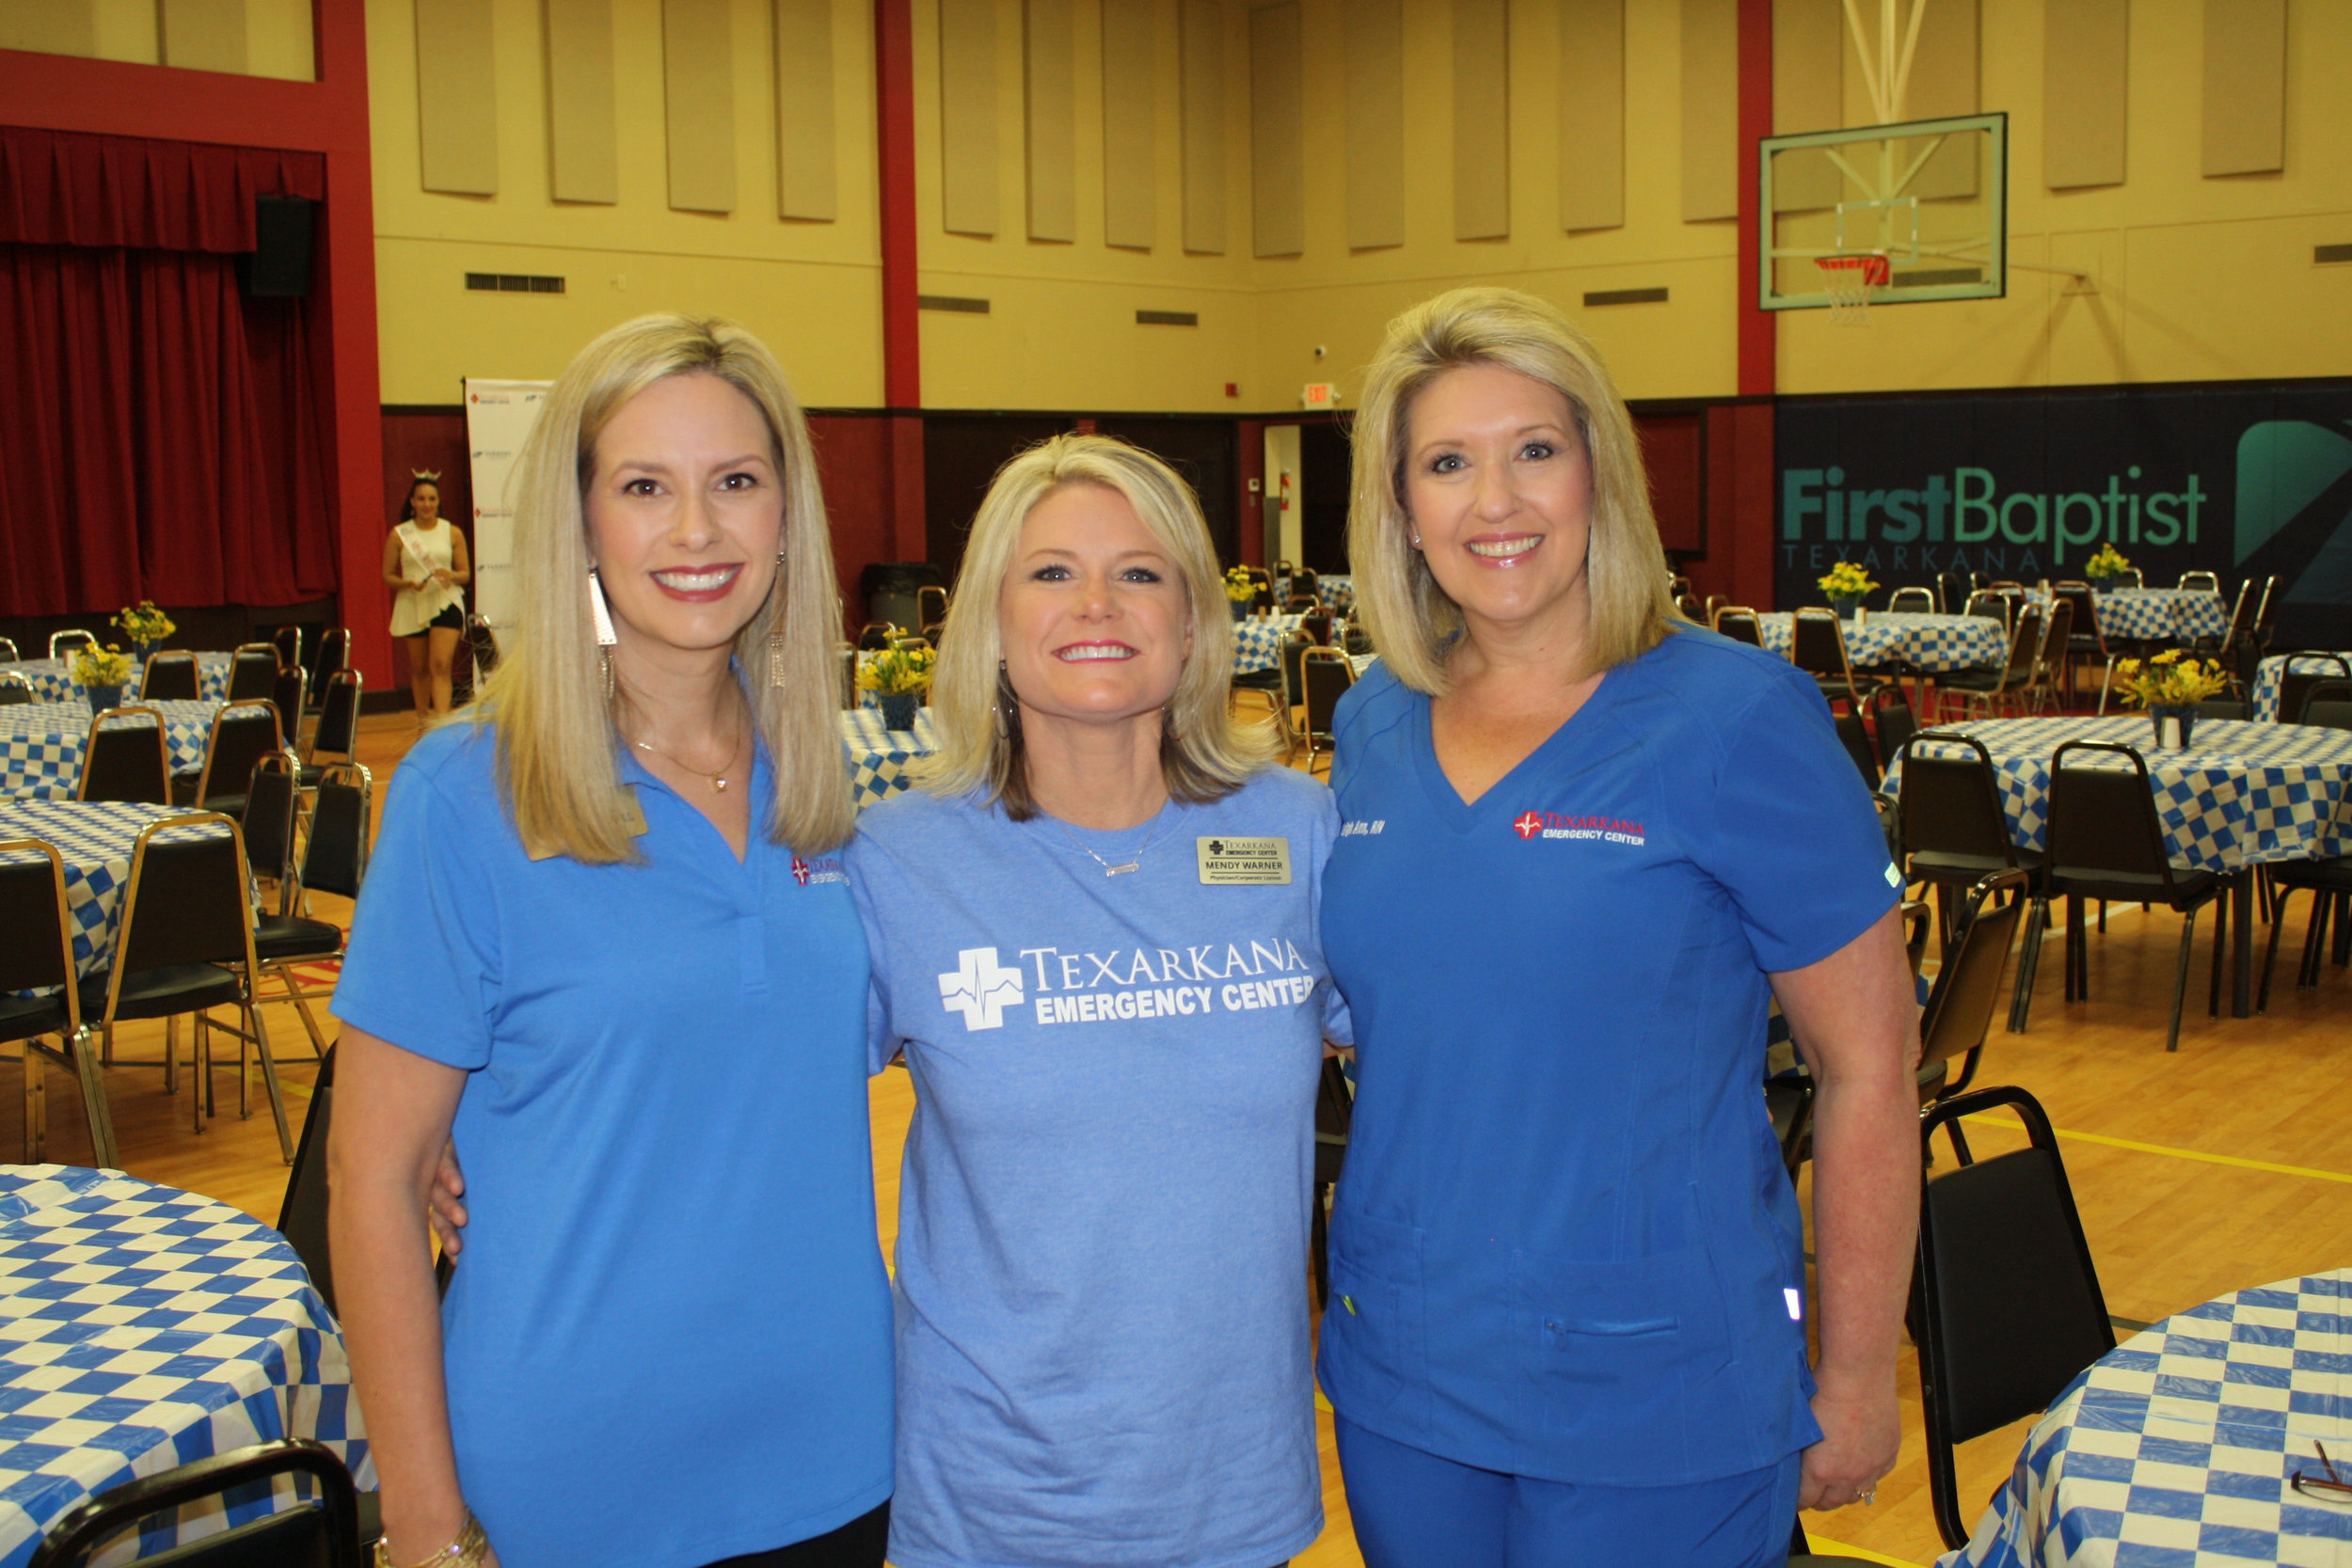 Brooke Marshall, Mendy Warner and Leigh Ann Scates